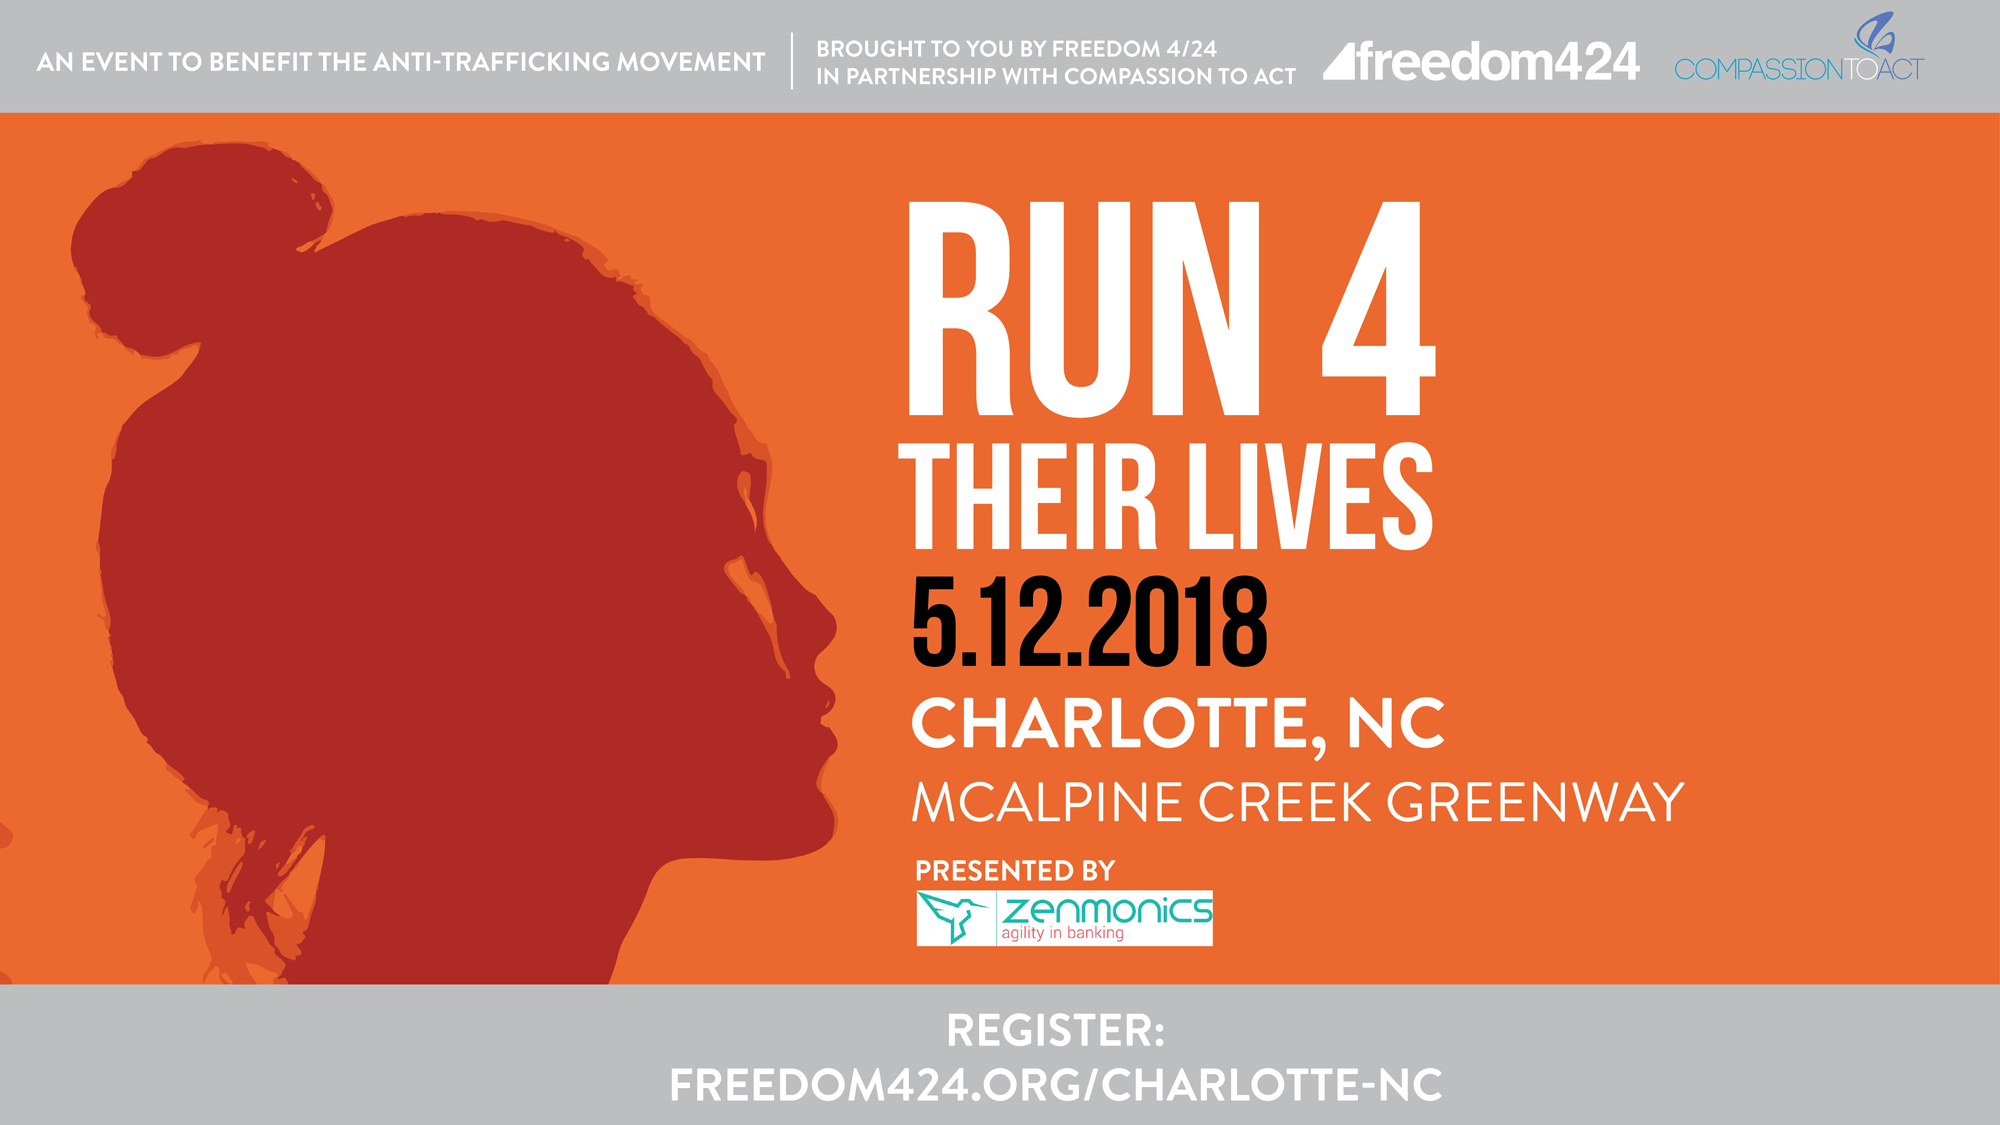 Run 4 Their Lives 5k